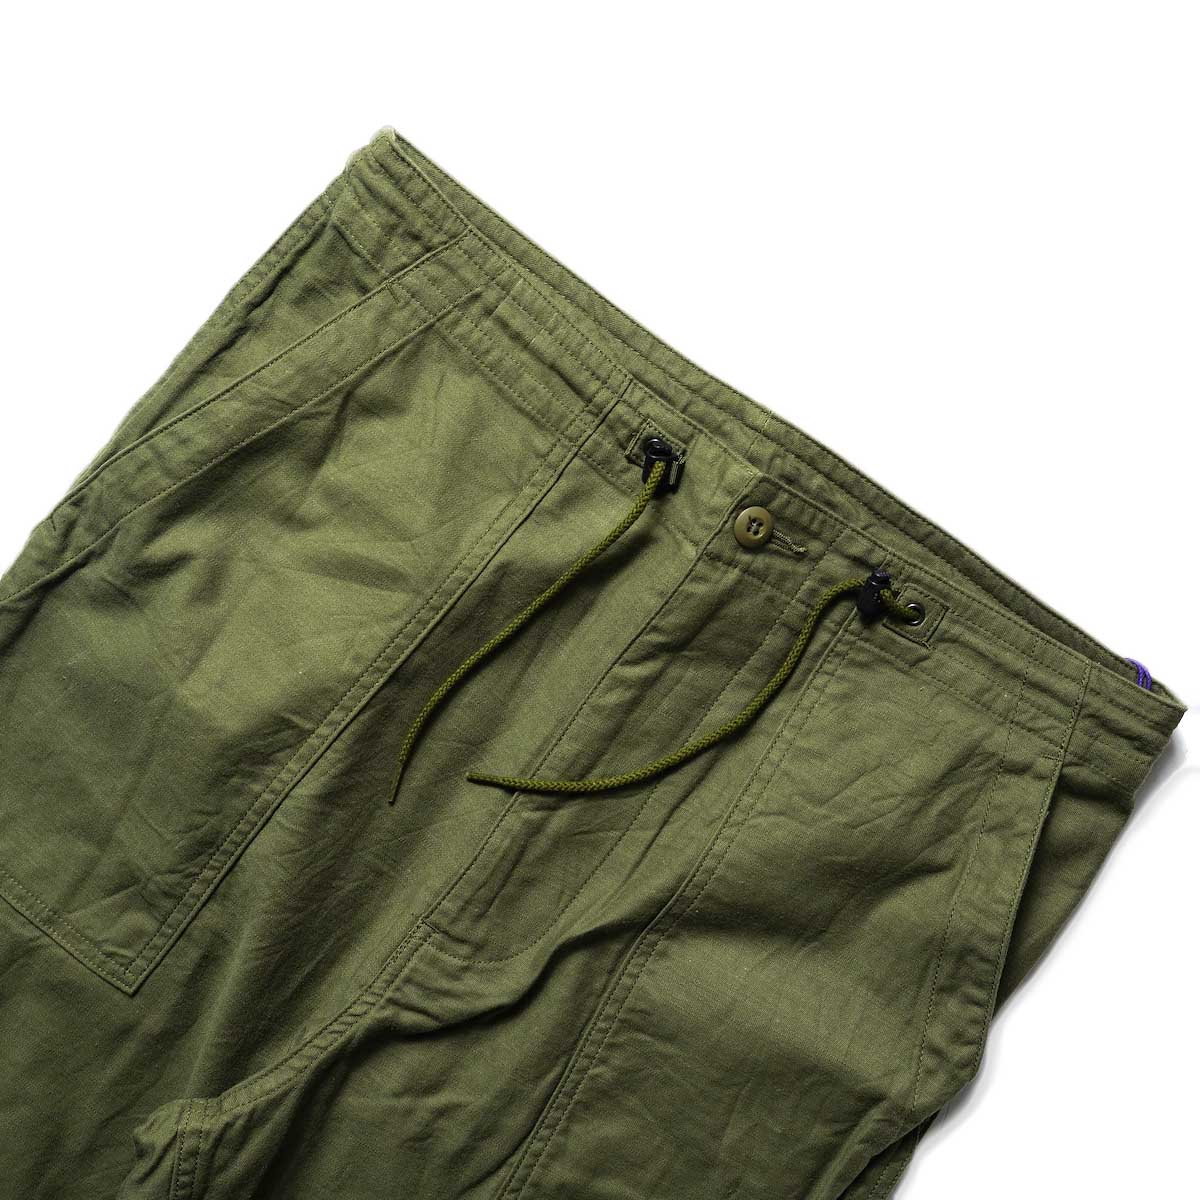 Needles / STRING FATIGUE PANT - BACK SATEEN (Olive)ウエスト